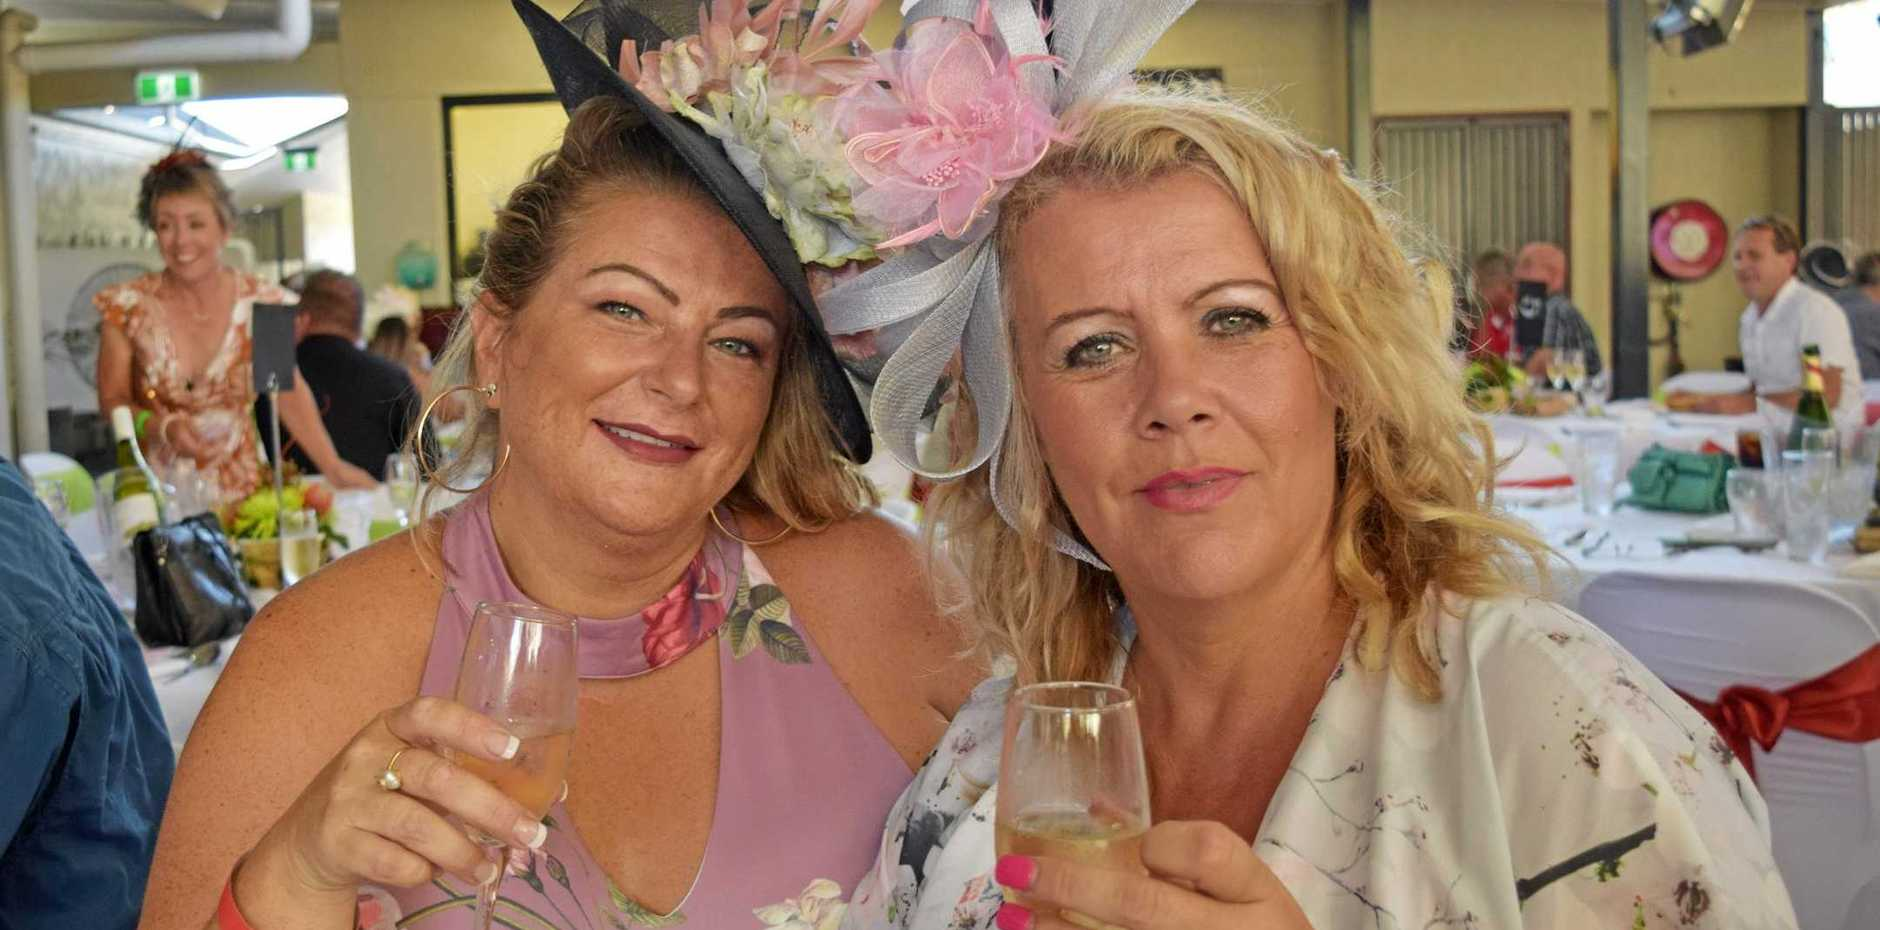 Joanne Bartholomew and Jane Patterson lunching in style for the Melbourne Cup at the Reef Gateway Hotel.